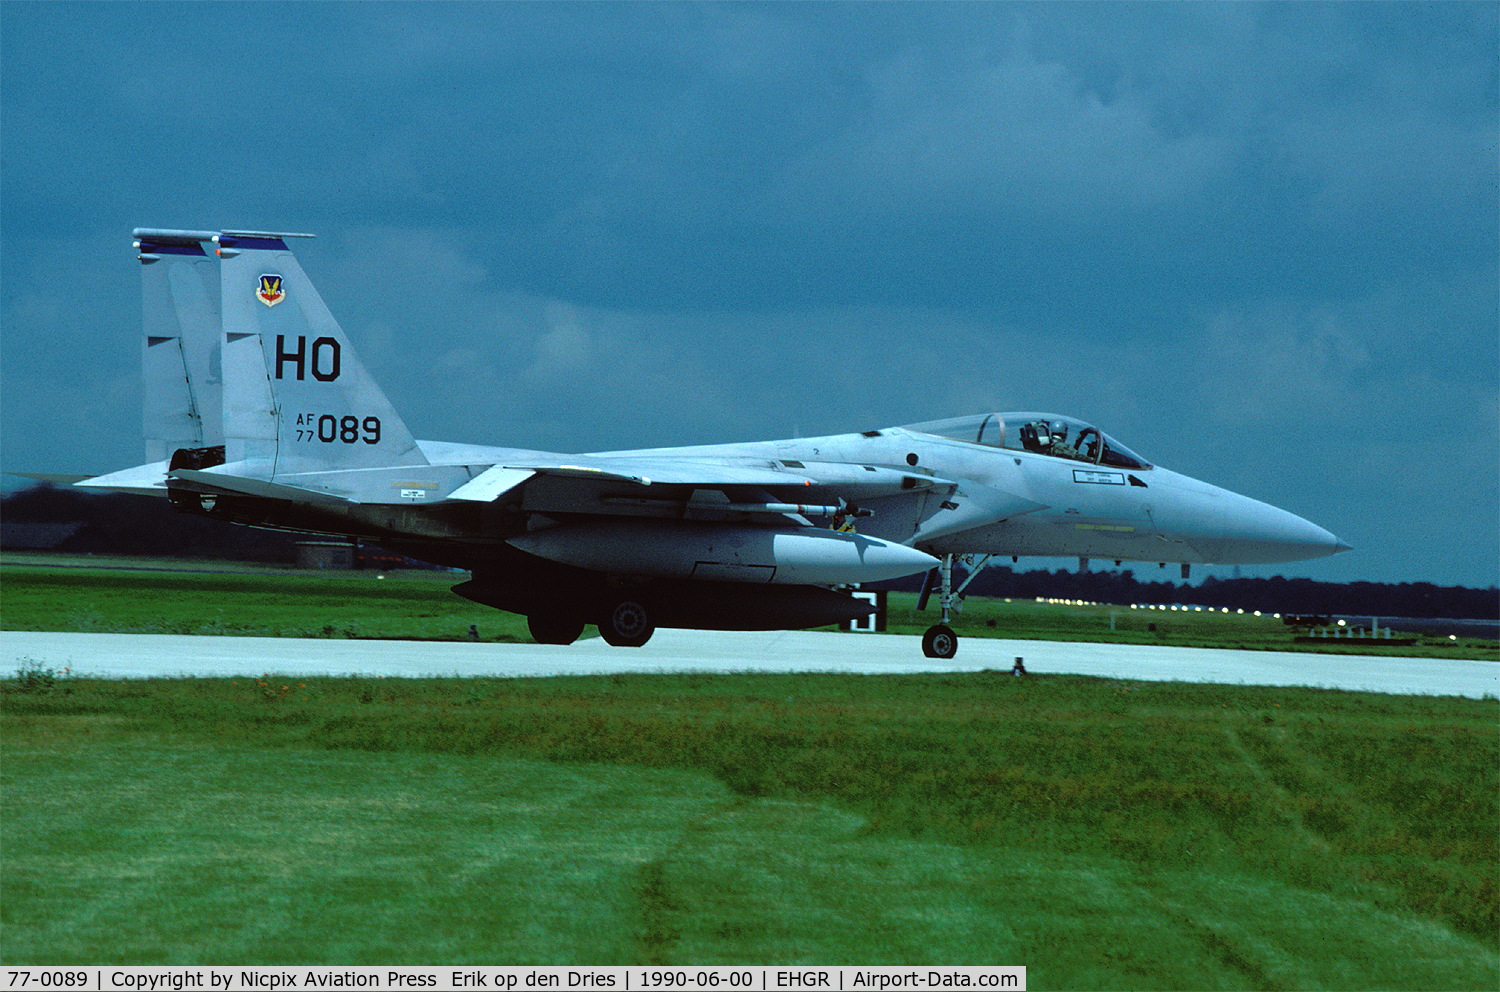 77-0089, 1978 McDonnell Douglas F-15A Eagle C/N 0370/A301, 49 TFW F-15A 77-0089 seen here on deployment at Gilze-Rijen AB, The Netherlands in 1990, used to be a 32 TFS aircraft of Soesterberg AB.